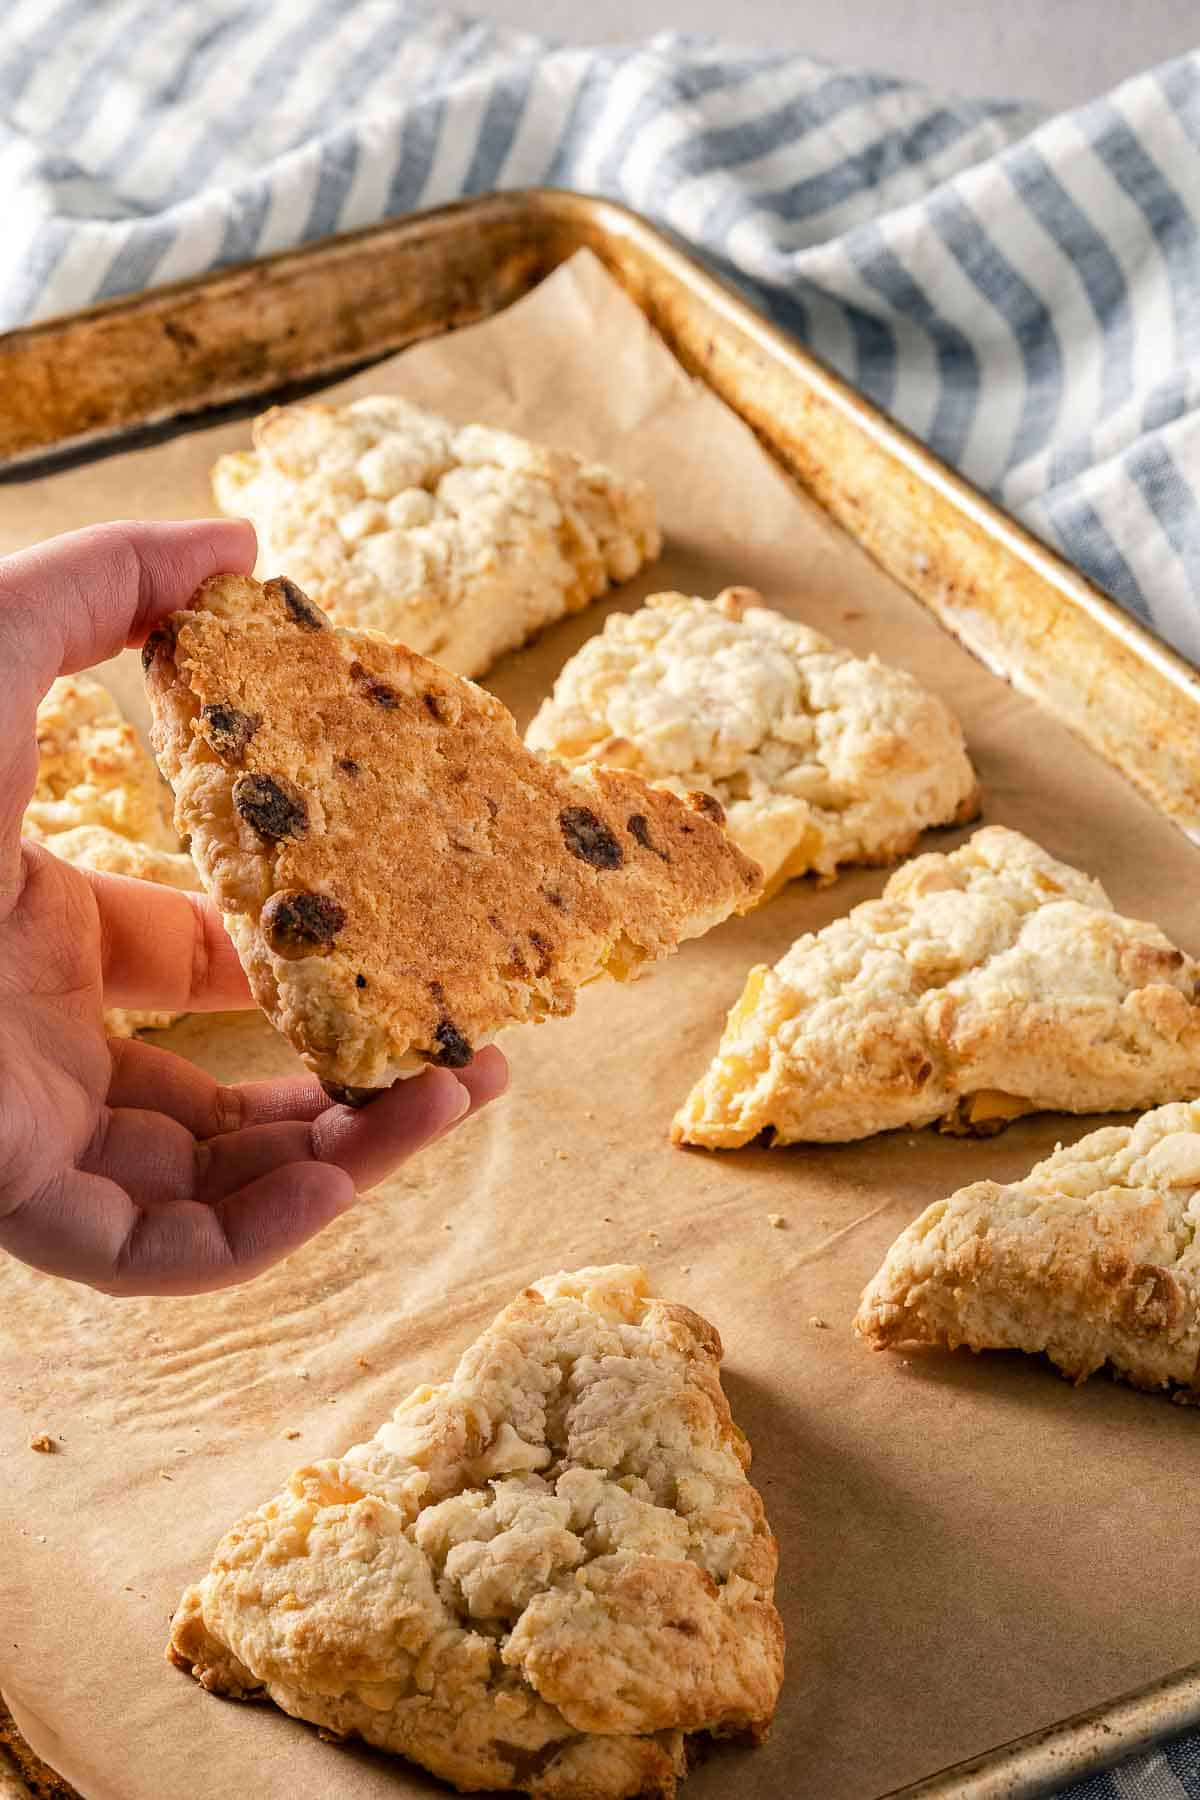 baked scone on baking sheet with hand holding scone to show bottom